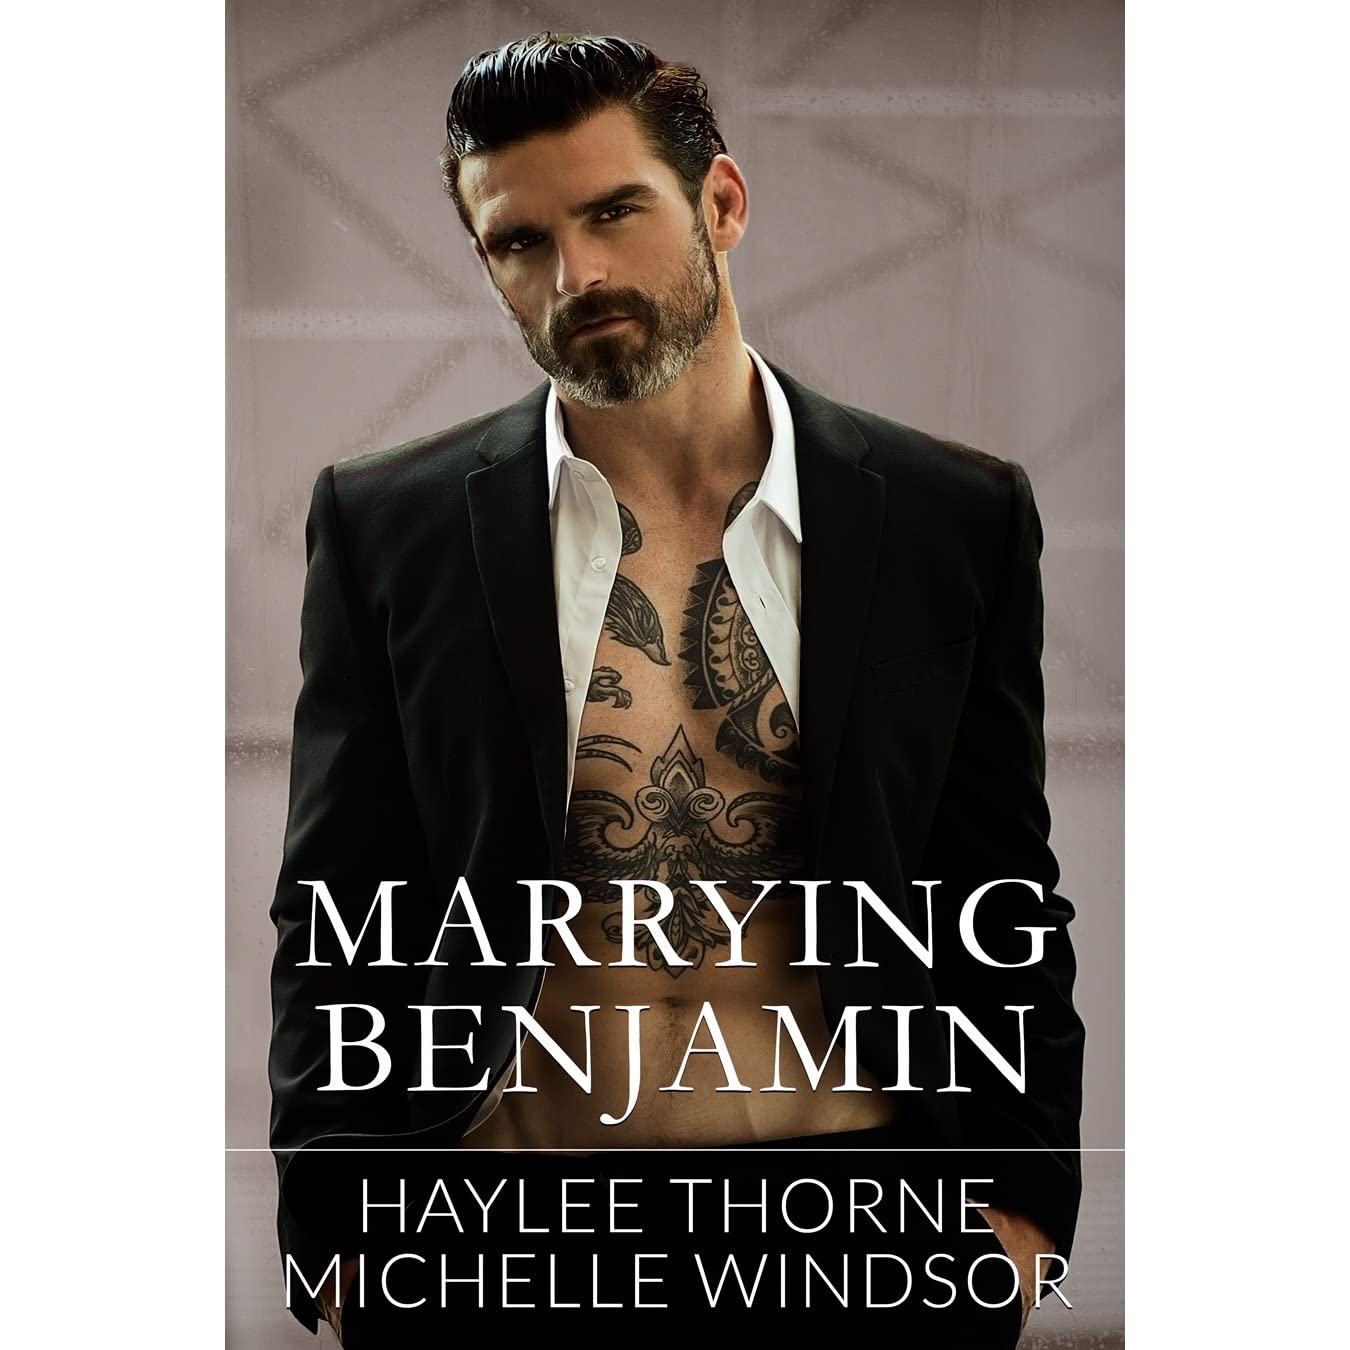 Marrying Benjamin by Haylee Thorne